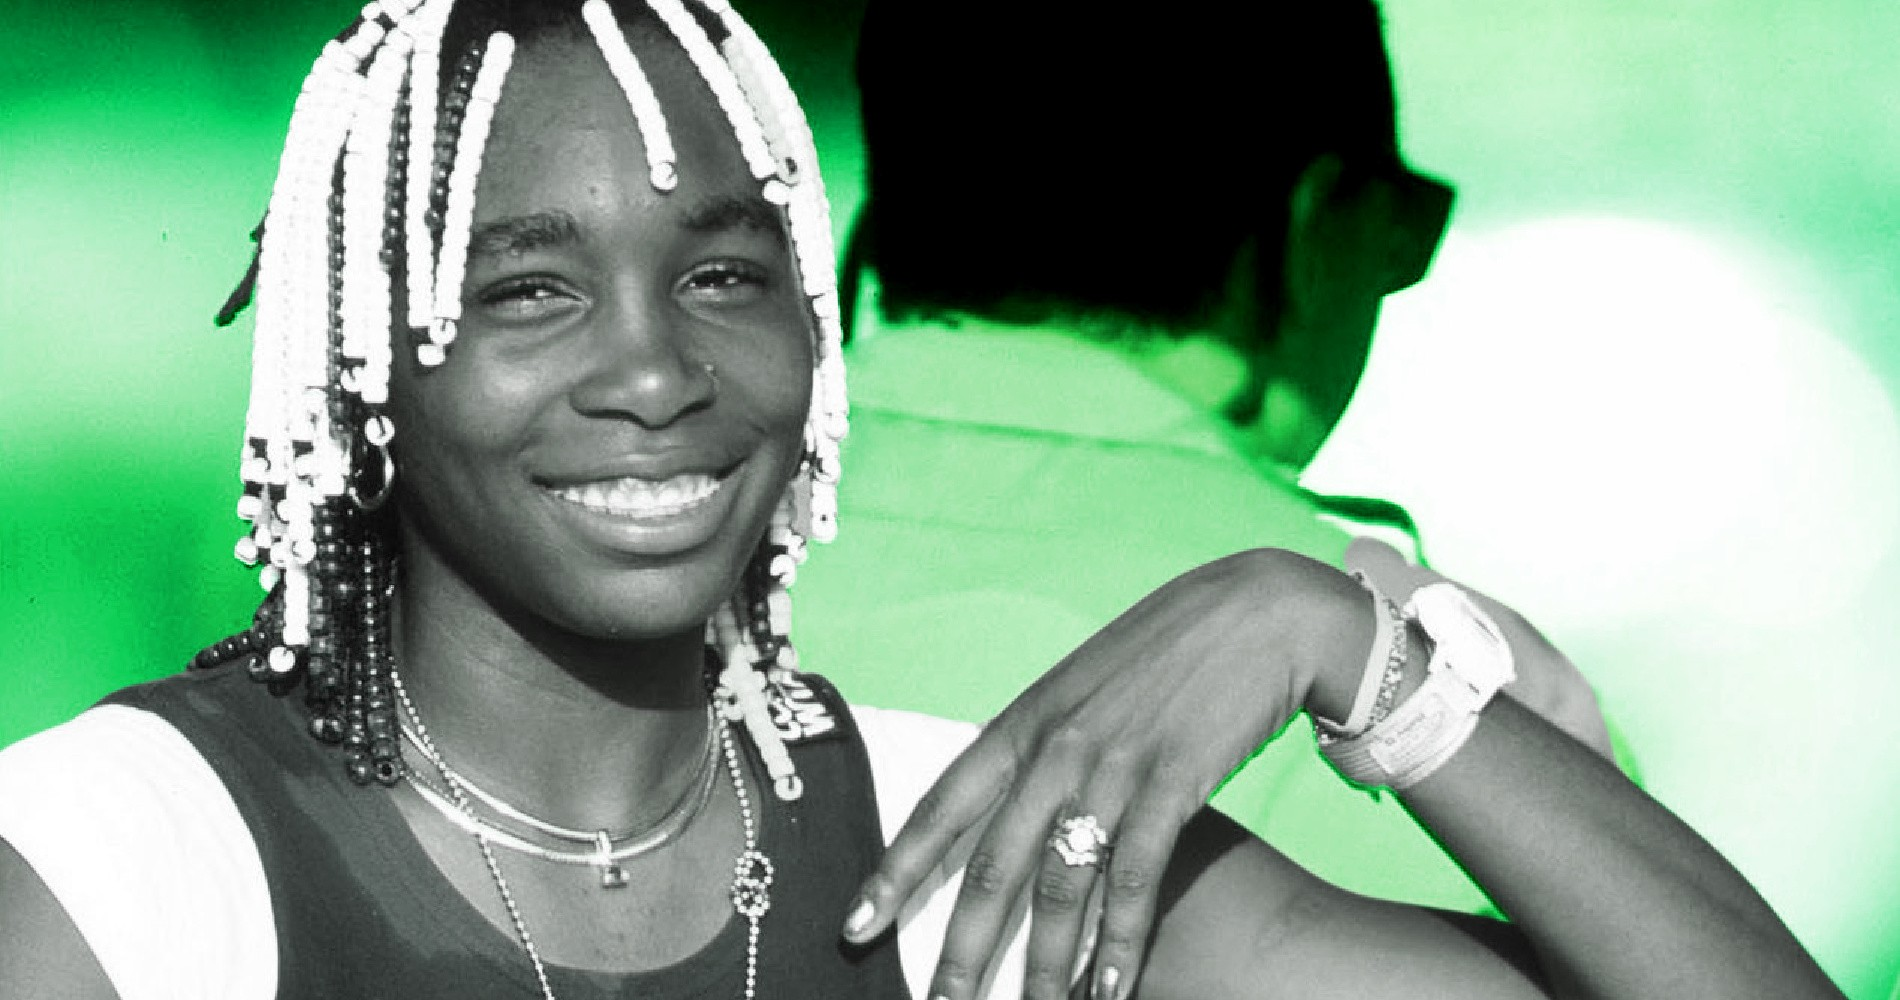 Venus Williams, On this day